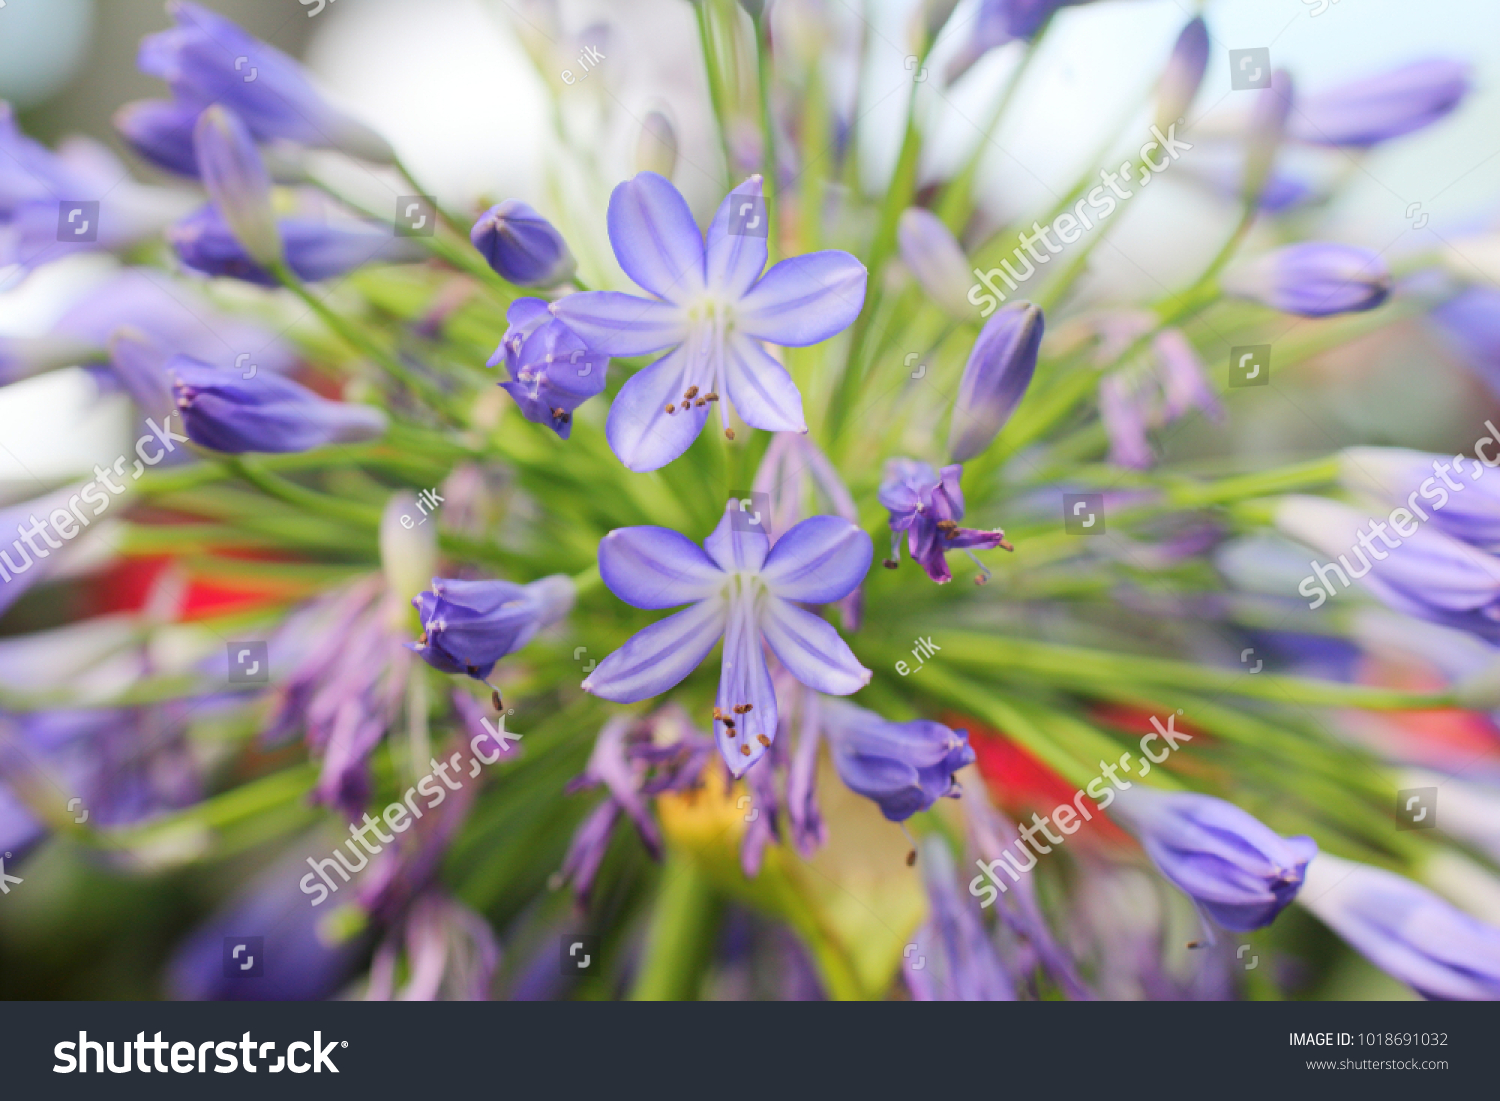 Lily nile plant stock photo edit now 1018691032 shutterstock lily of the nile plant izmirmasajfo